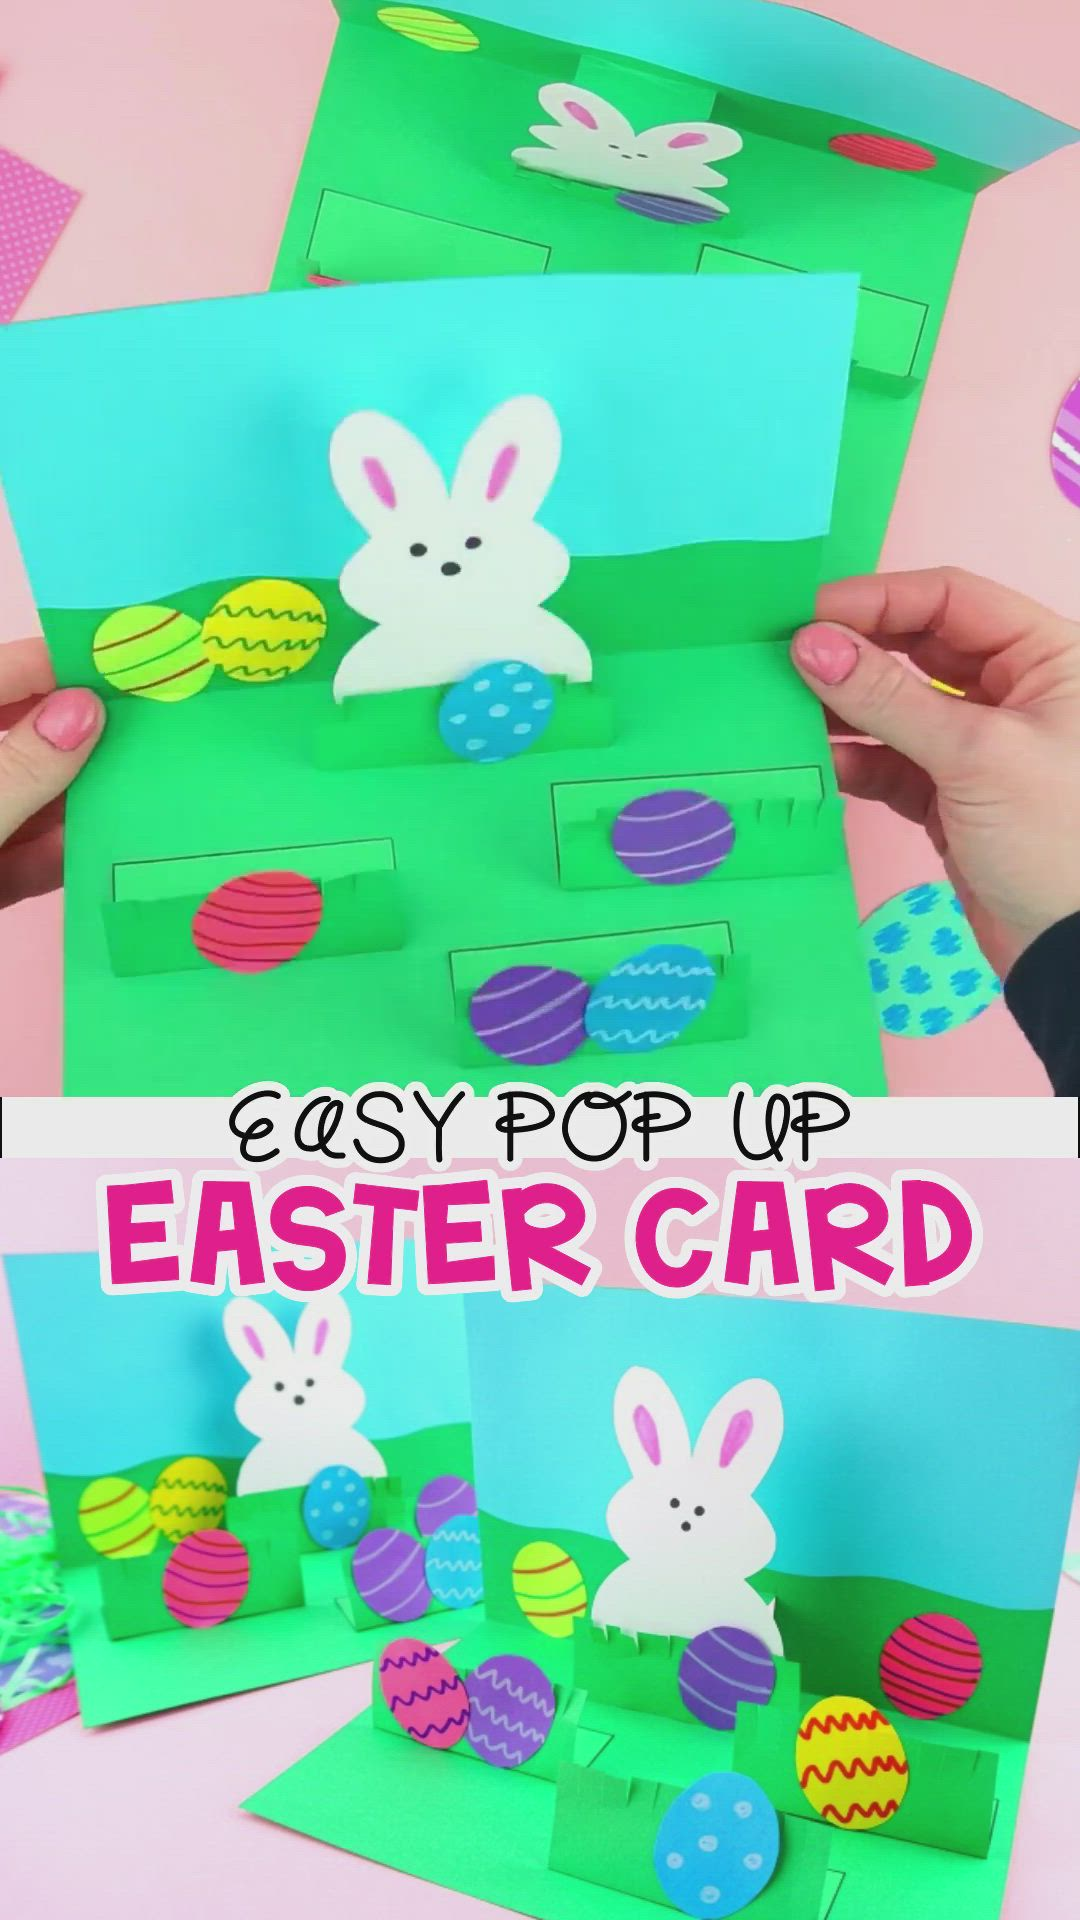 How To Make A Pop Up Easter Card Easy Easter Craft For Kids Video Video Easter Cards Handmade Easter Kids Easy Easter Crafts